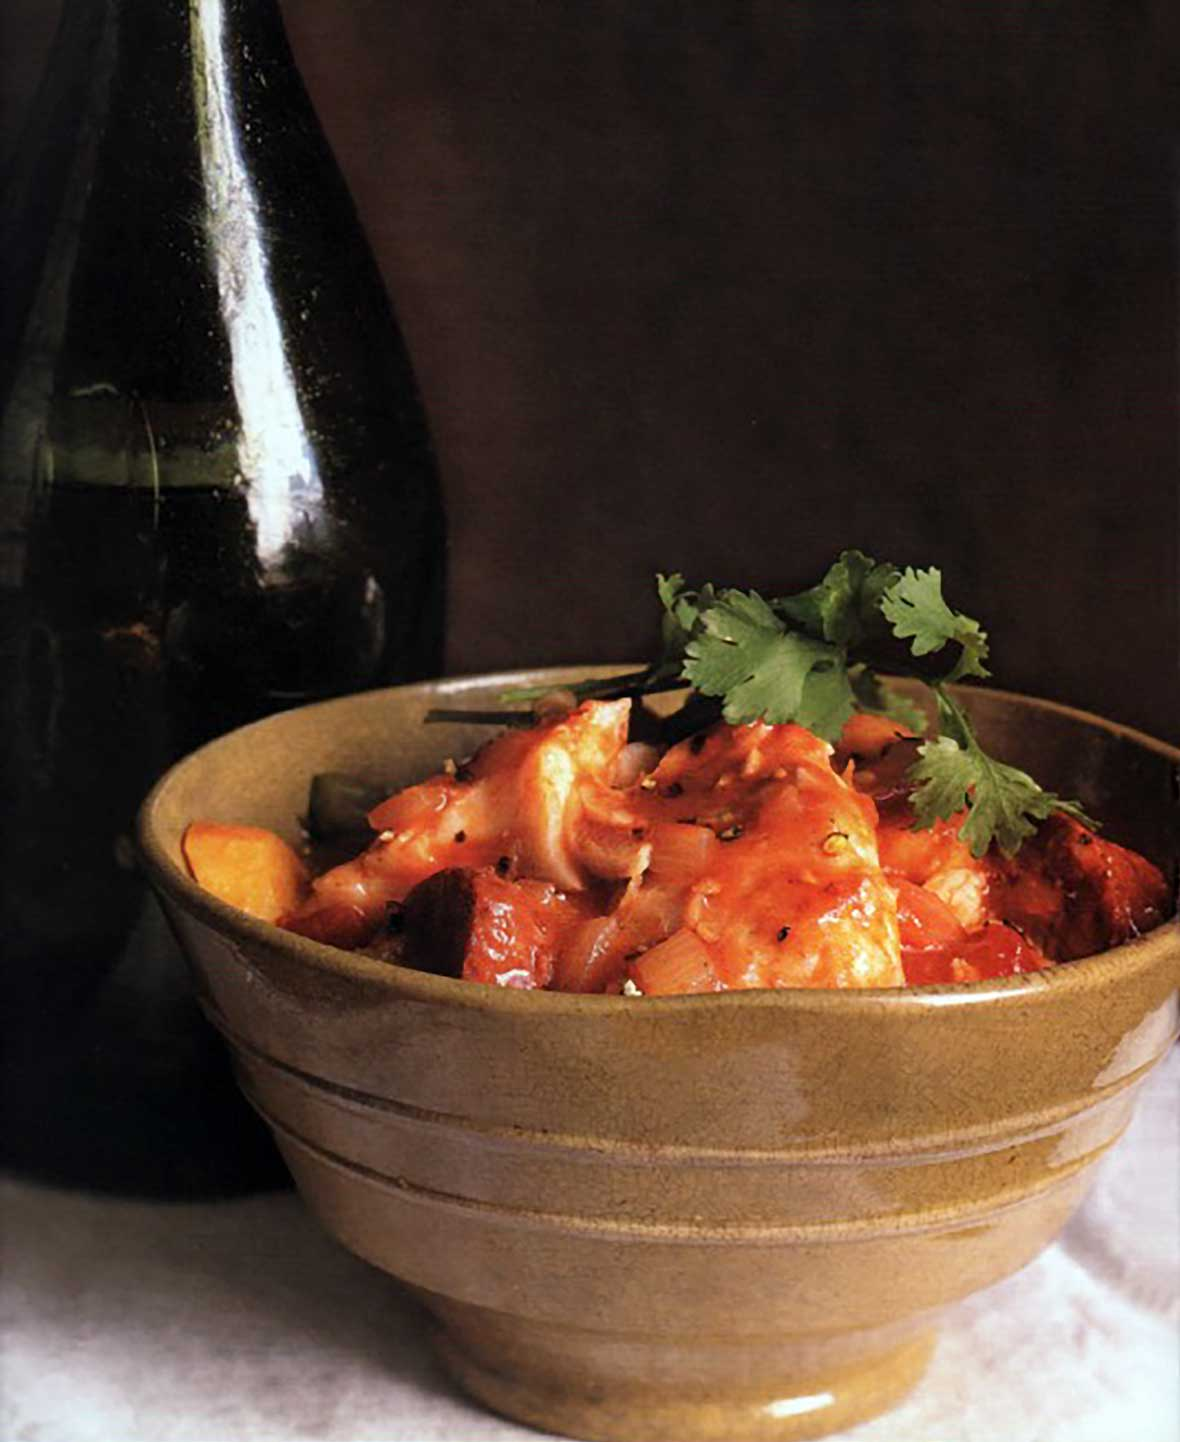 A brown ceramic bowl filled with Portuguese fish chowder, made with fish, potatoes, chouriço, tomatoes, and cilantro.